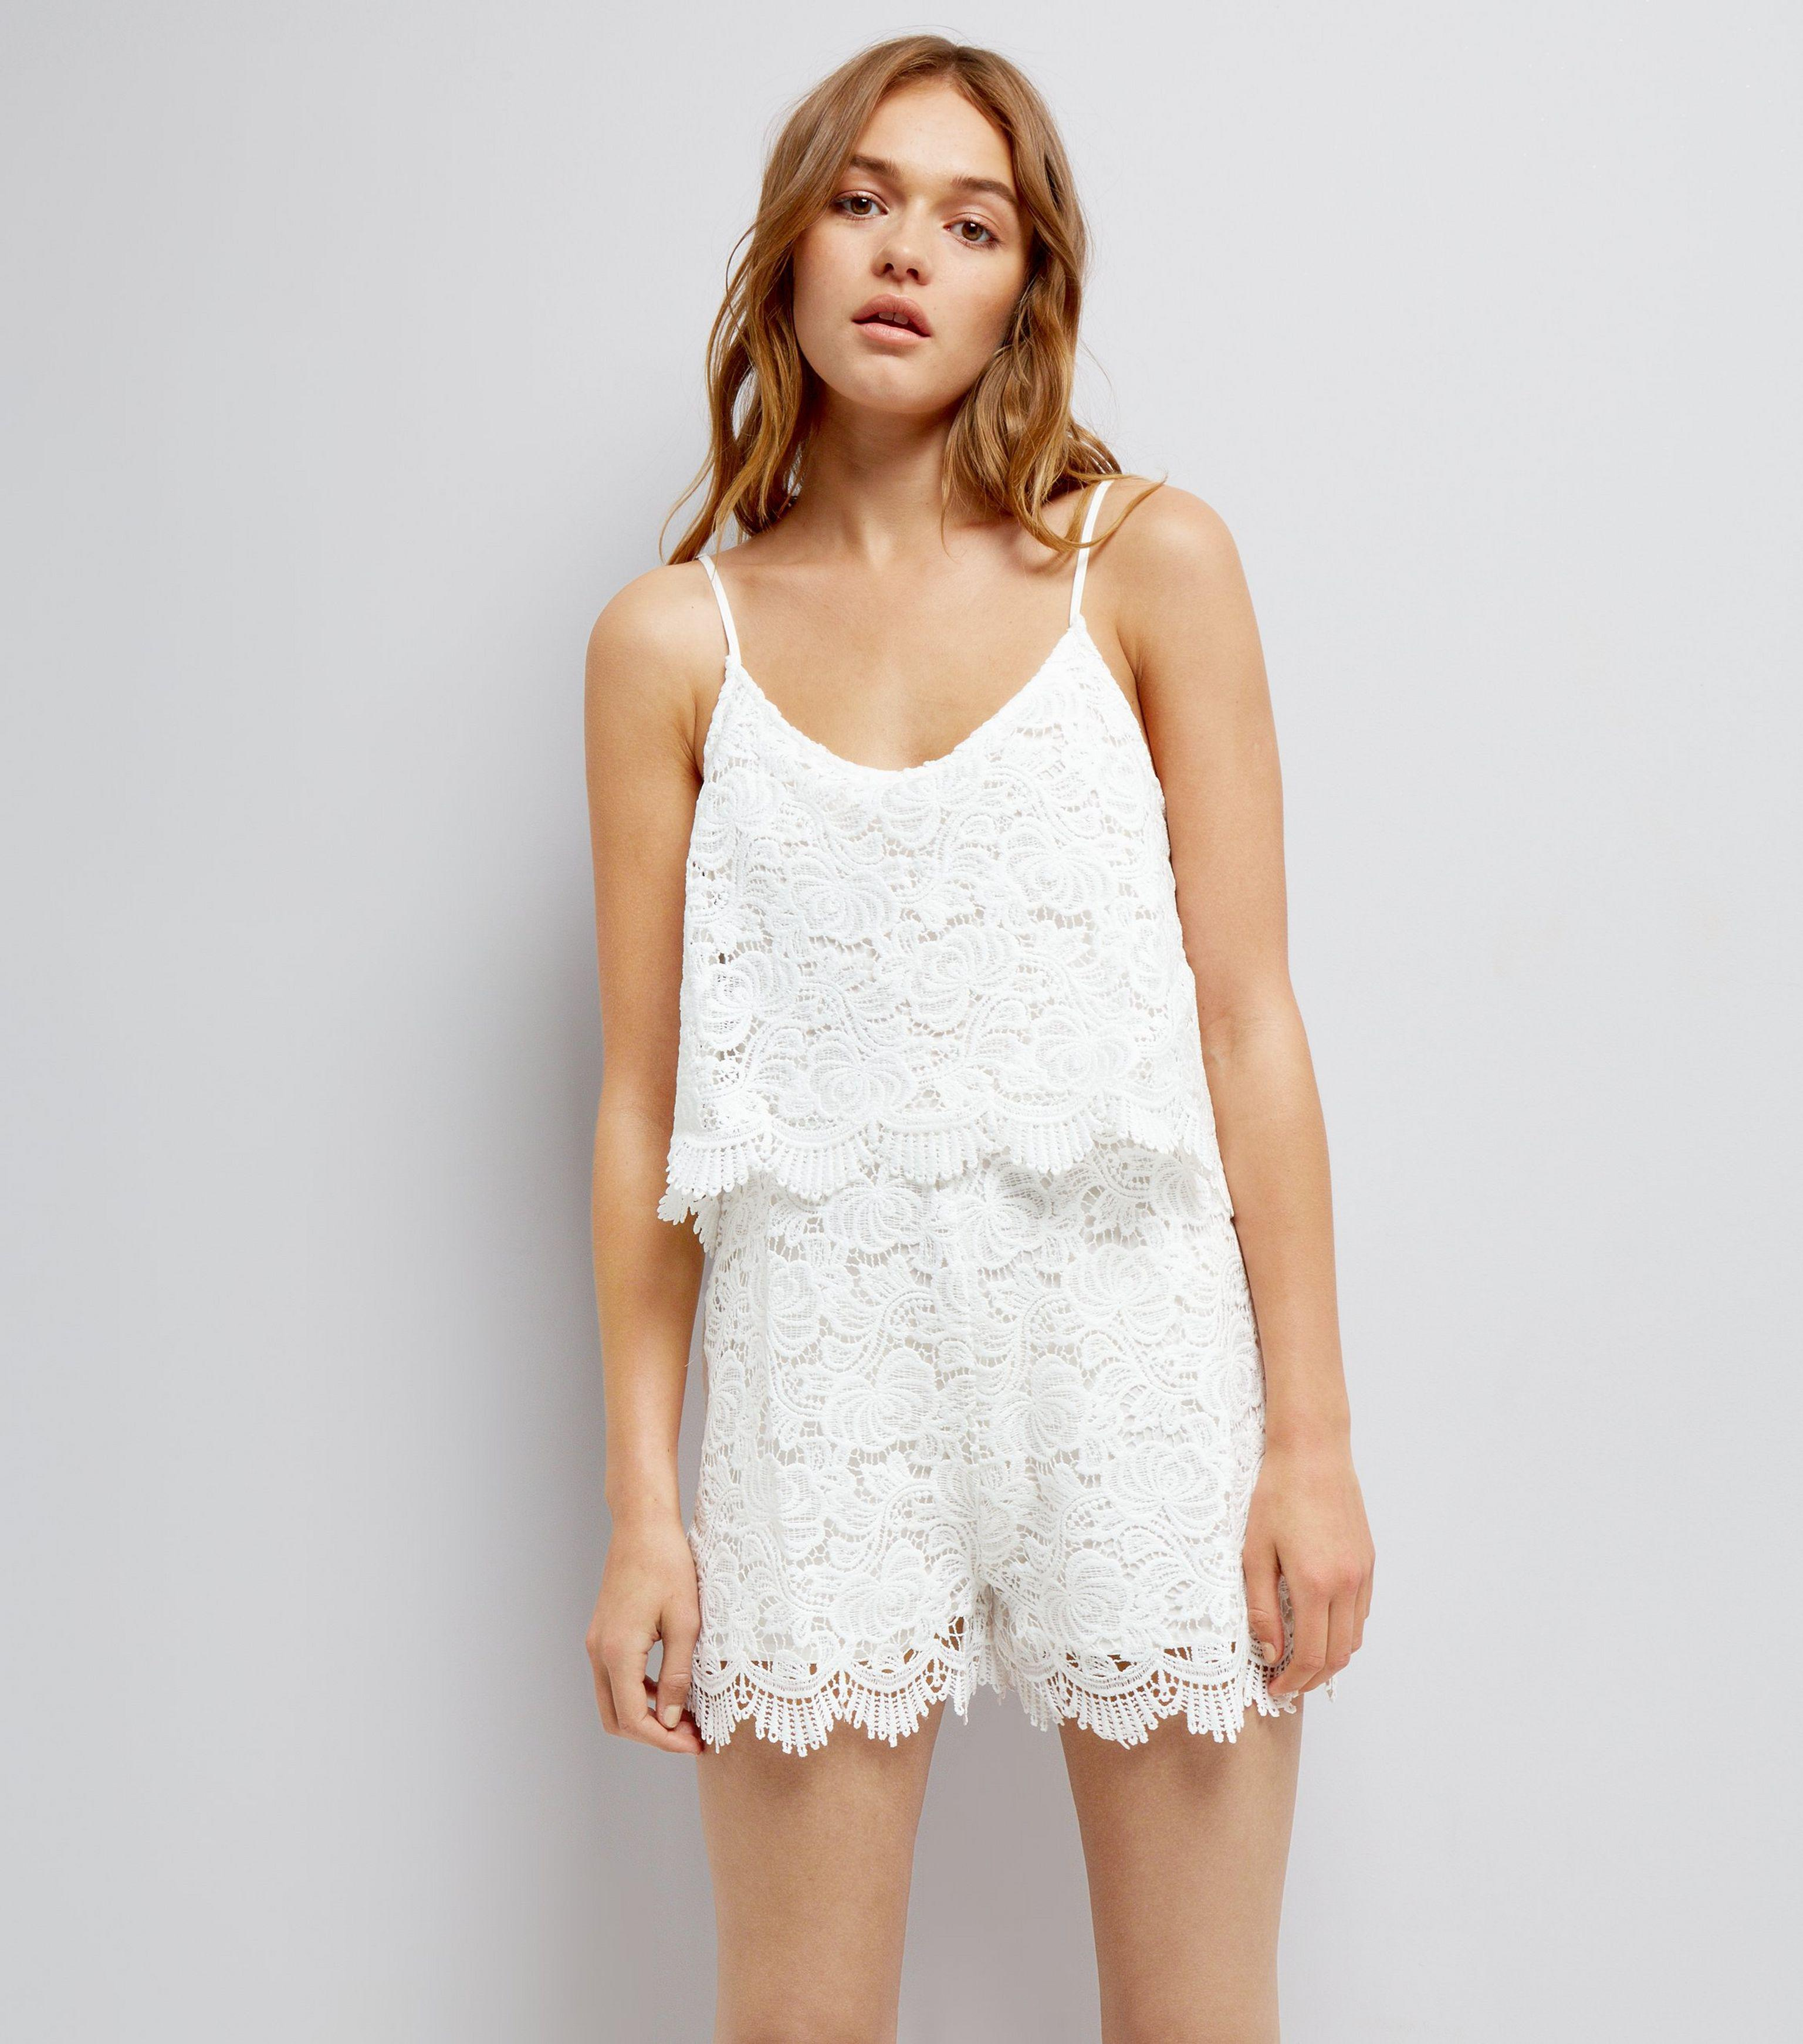 de9cd3a21f0 Urban Bliss Urban Bliss White Lace Playsuit in White - Lyst